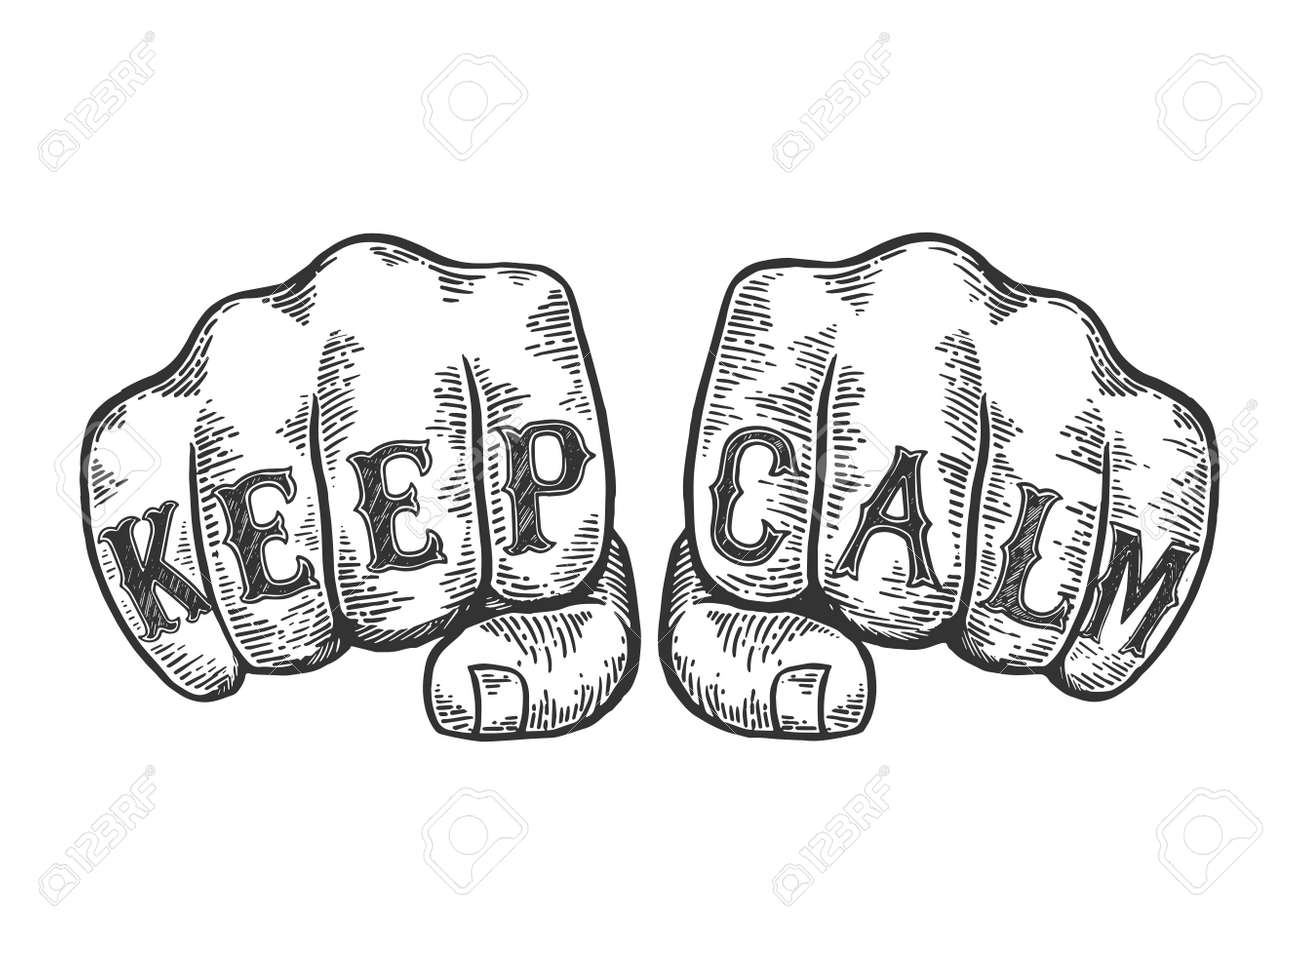 Keep calm words tattoo on fists font sketch engraving vector illustration. Scratch board style imitation. Black and white hand drawn image. - 118846950